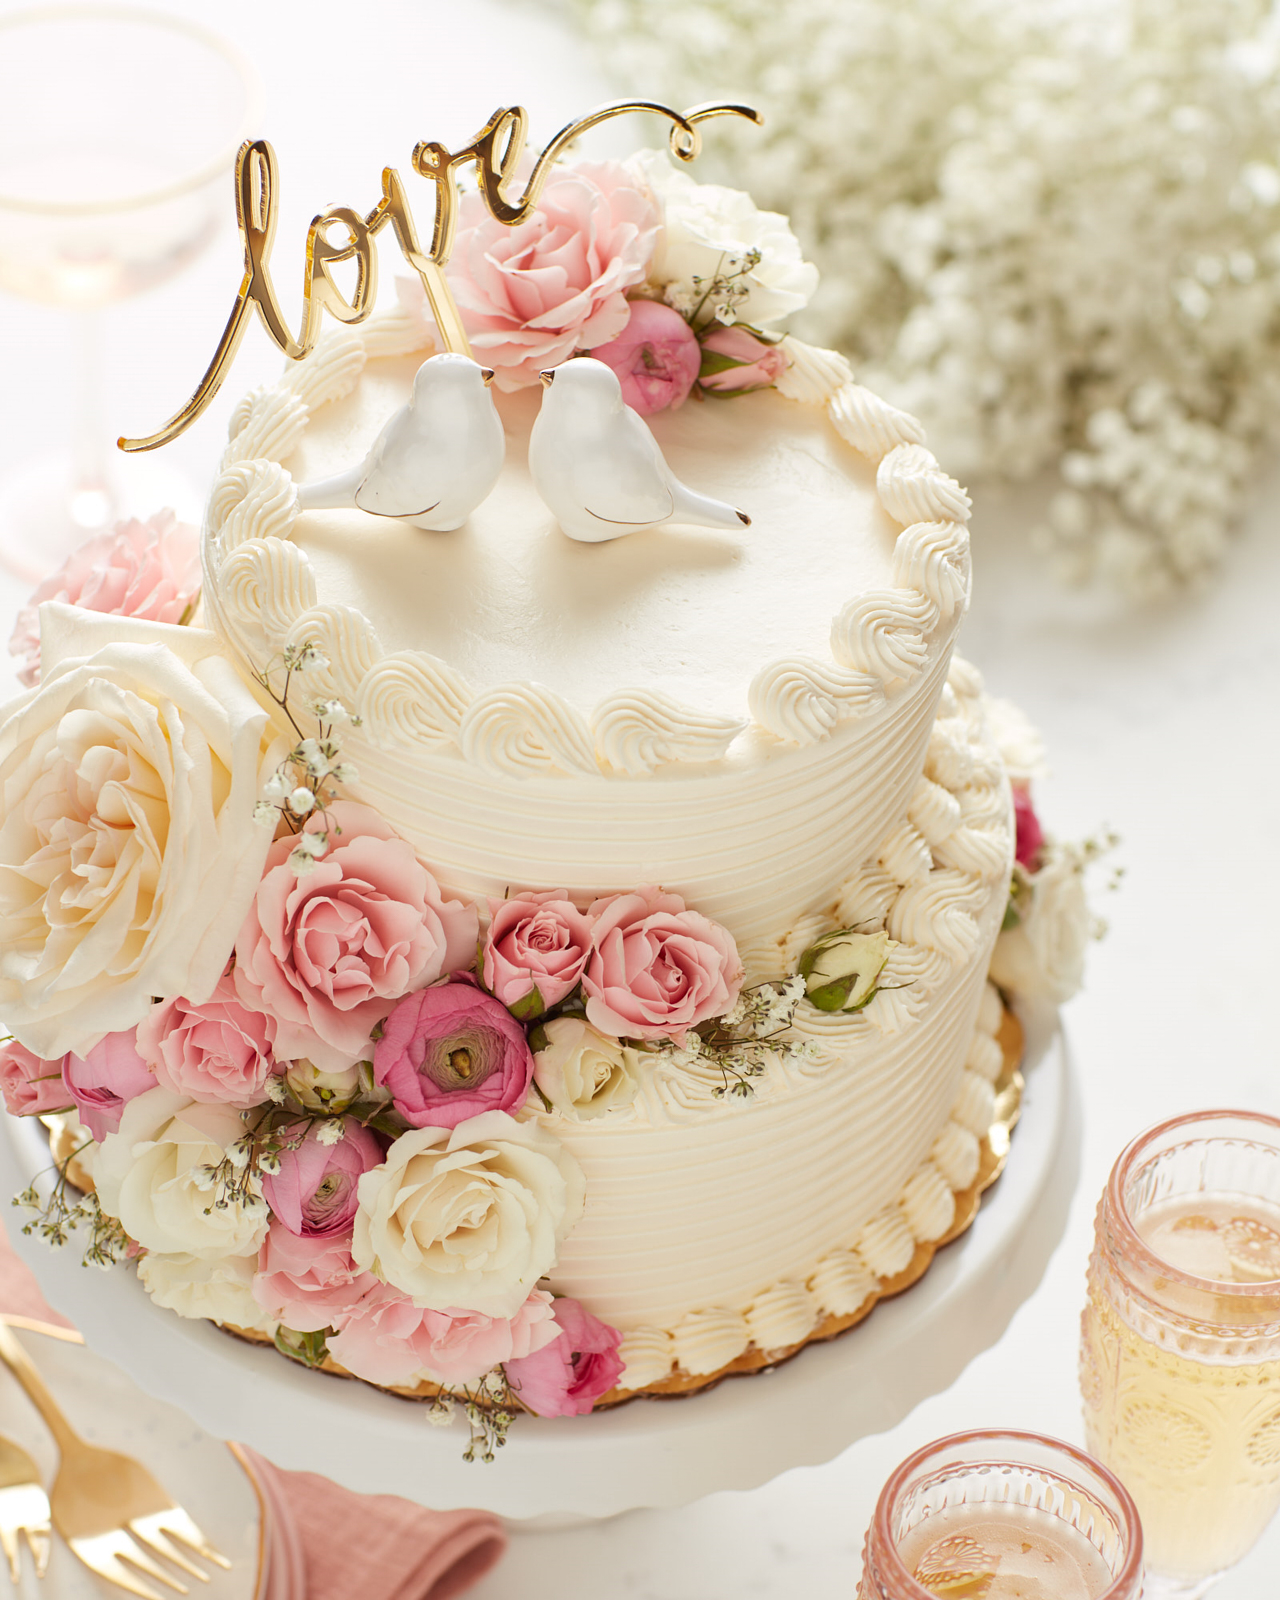 White two-tier wedding cake with pink and white flowers and a love script with two kissing birds cake topper